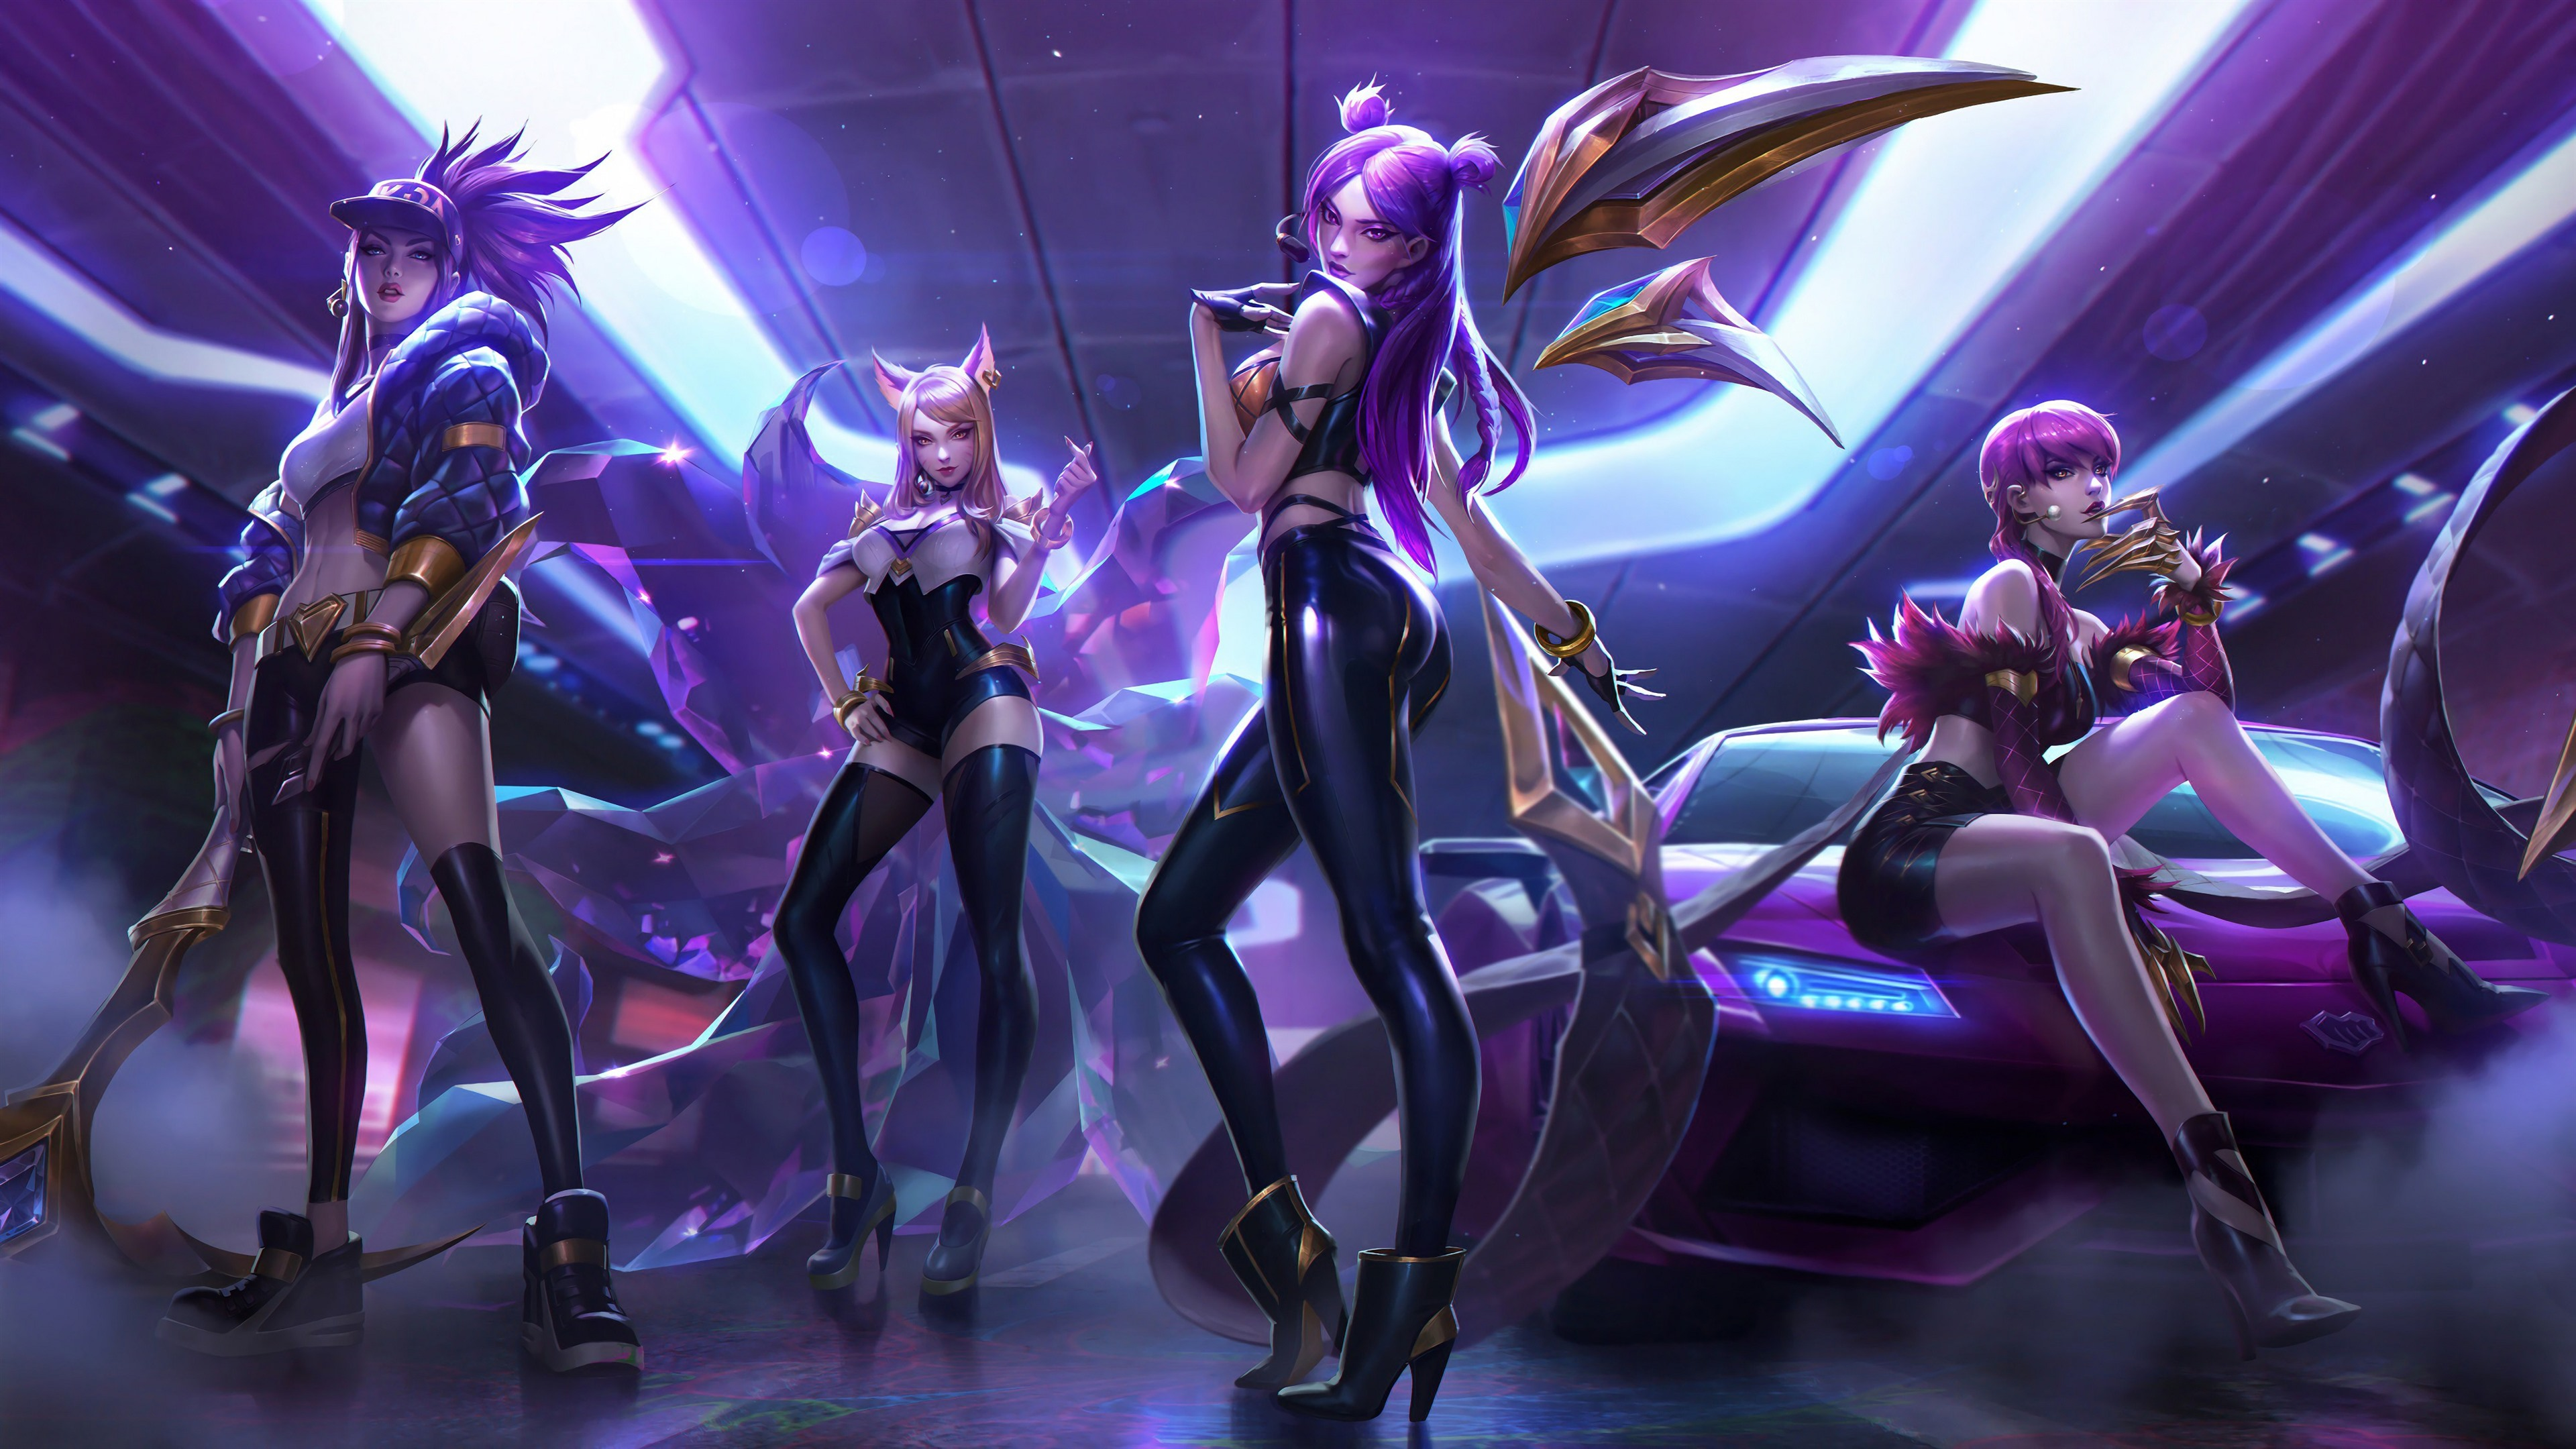 Wallpaper League Of Legend Four Beautiful Girls 3840x2160 Uhd 4k Picture Image